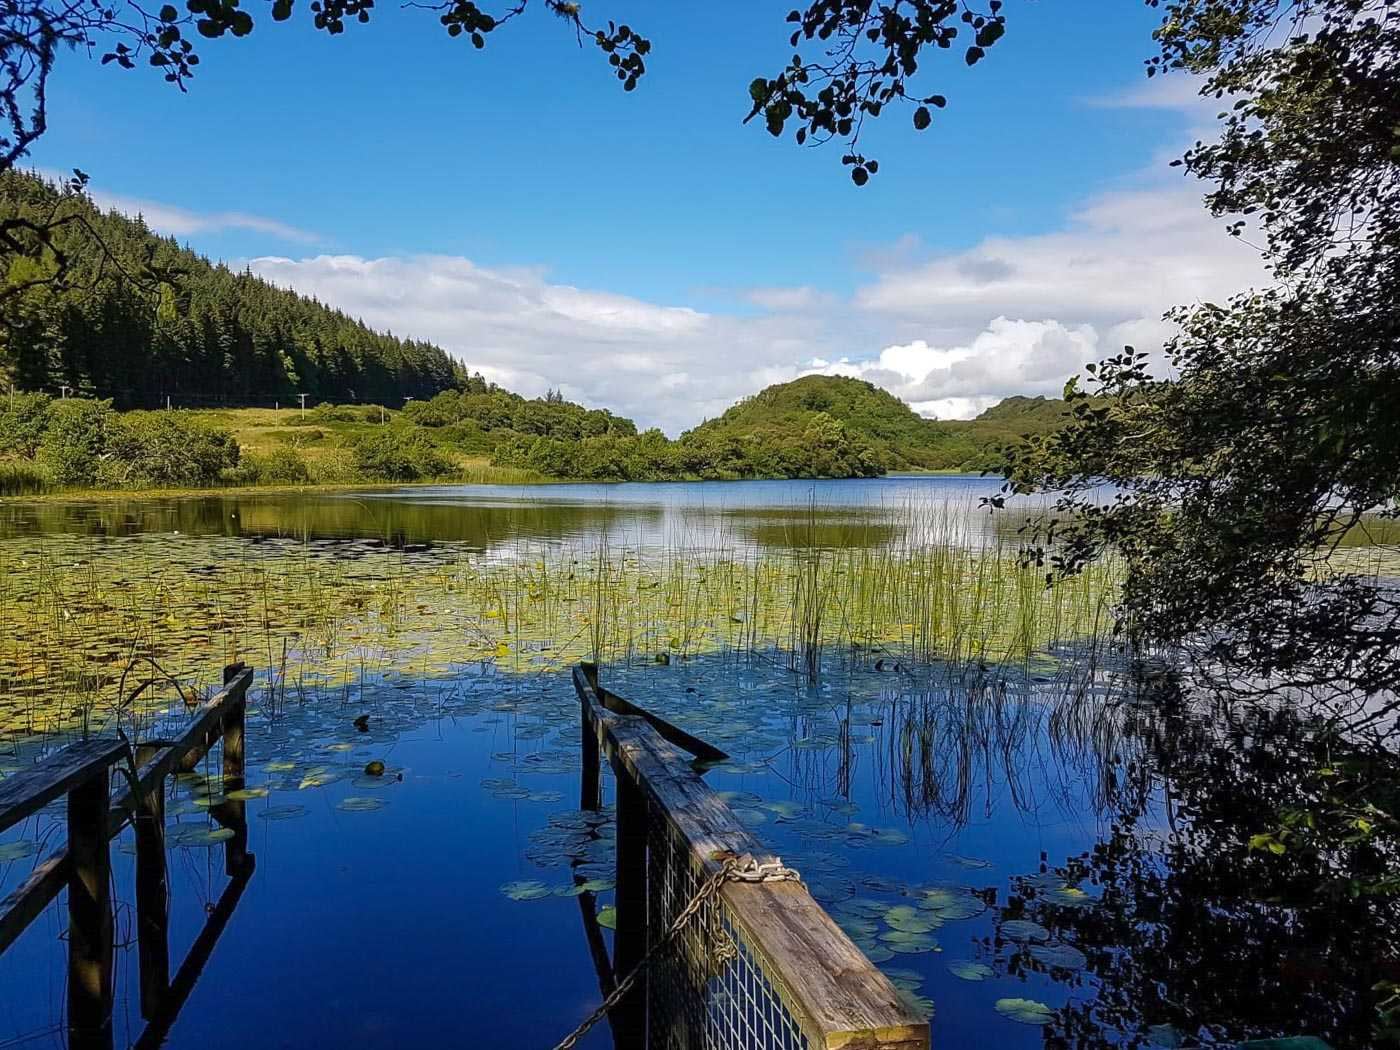 Loch view, flooded slipway and some reeds in foreground, grassy bushy and foresty inclines on the far side of the loch. Blue skies.